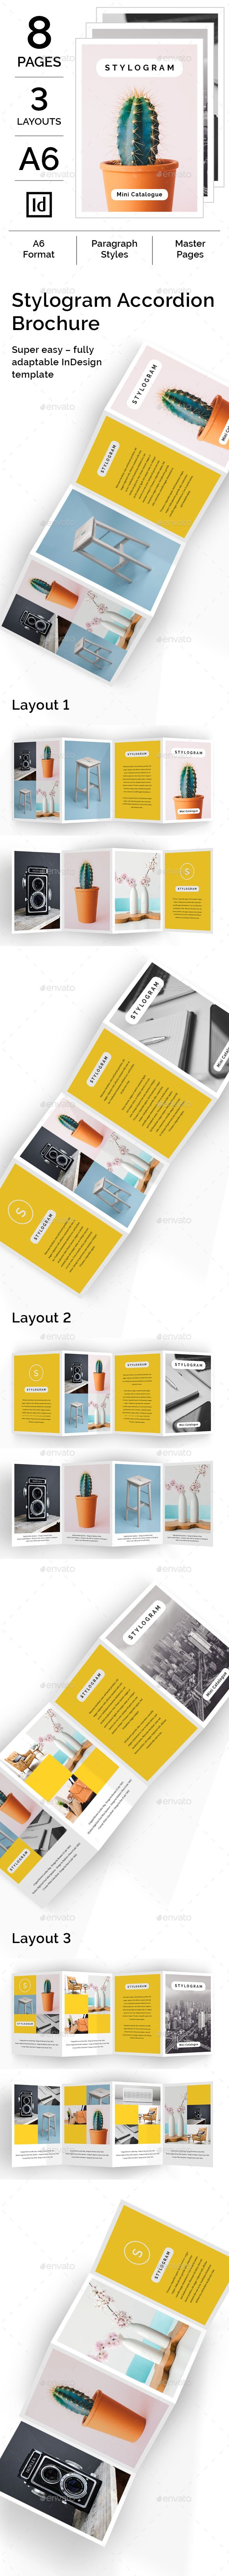 Stylogram Accordion Brochure | Folletos